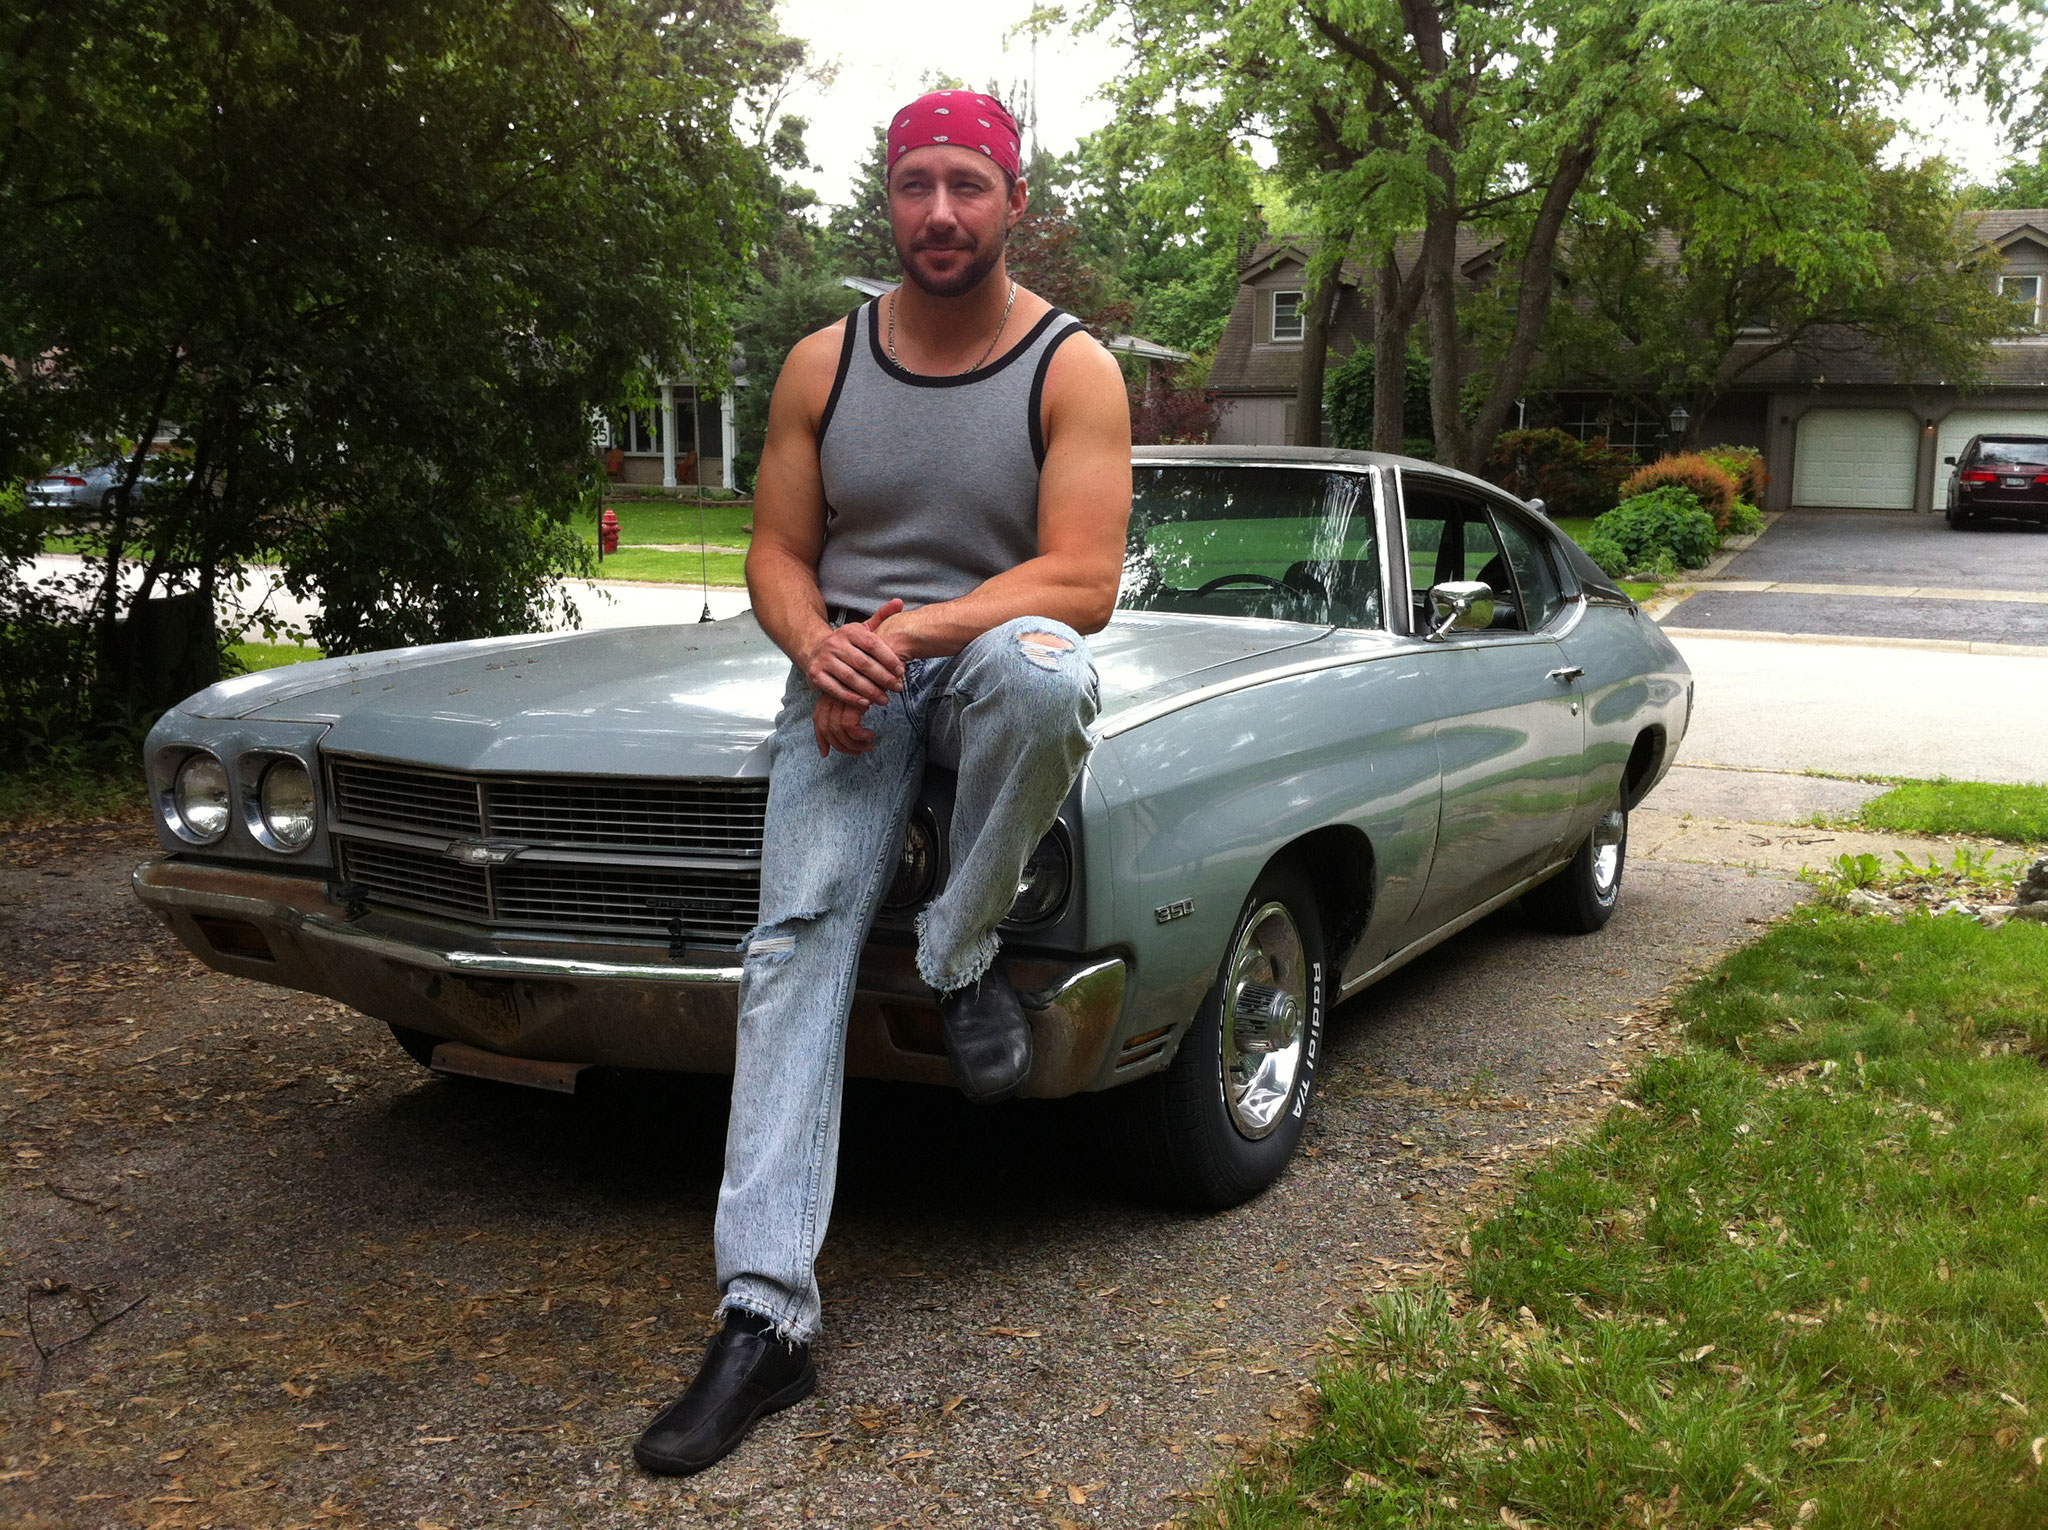 Tony Lee hanging out on his badass Chevelle.